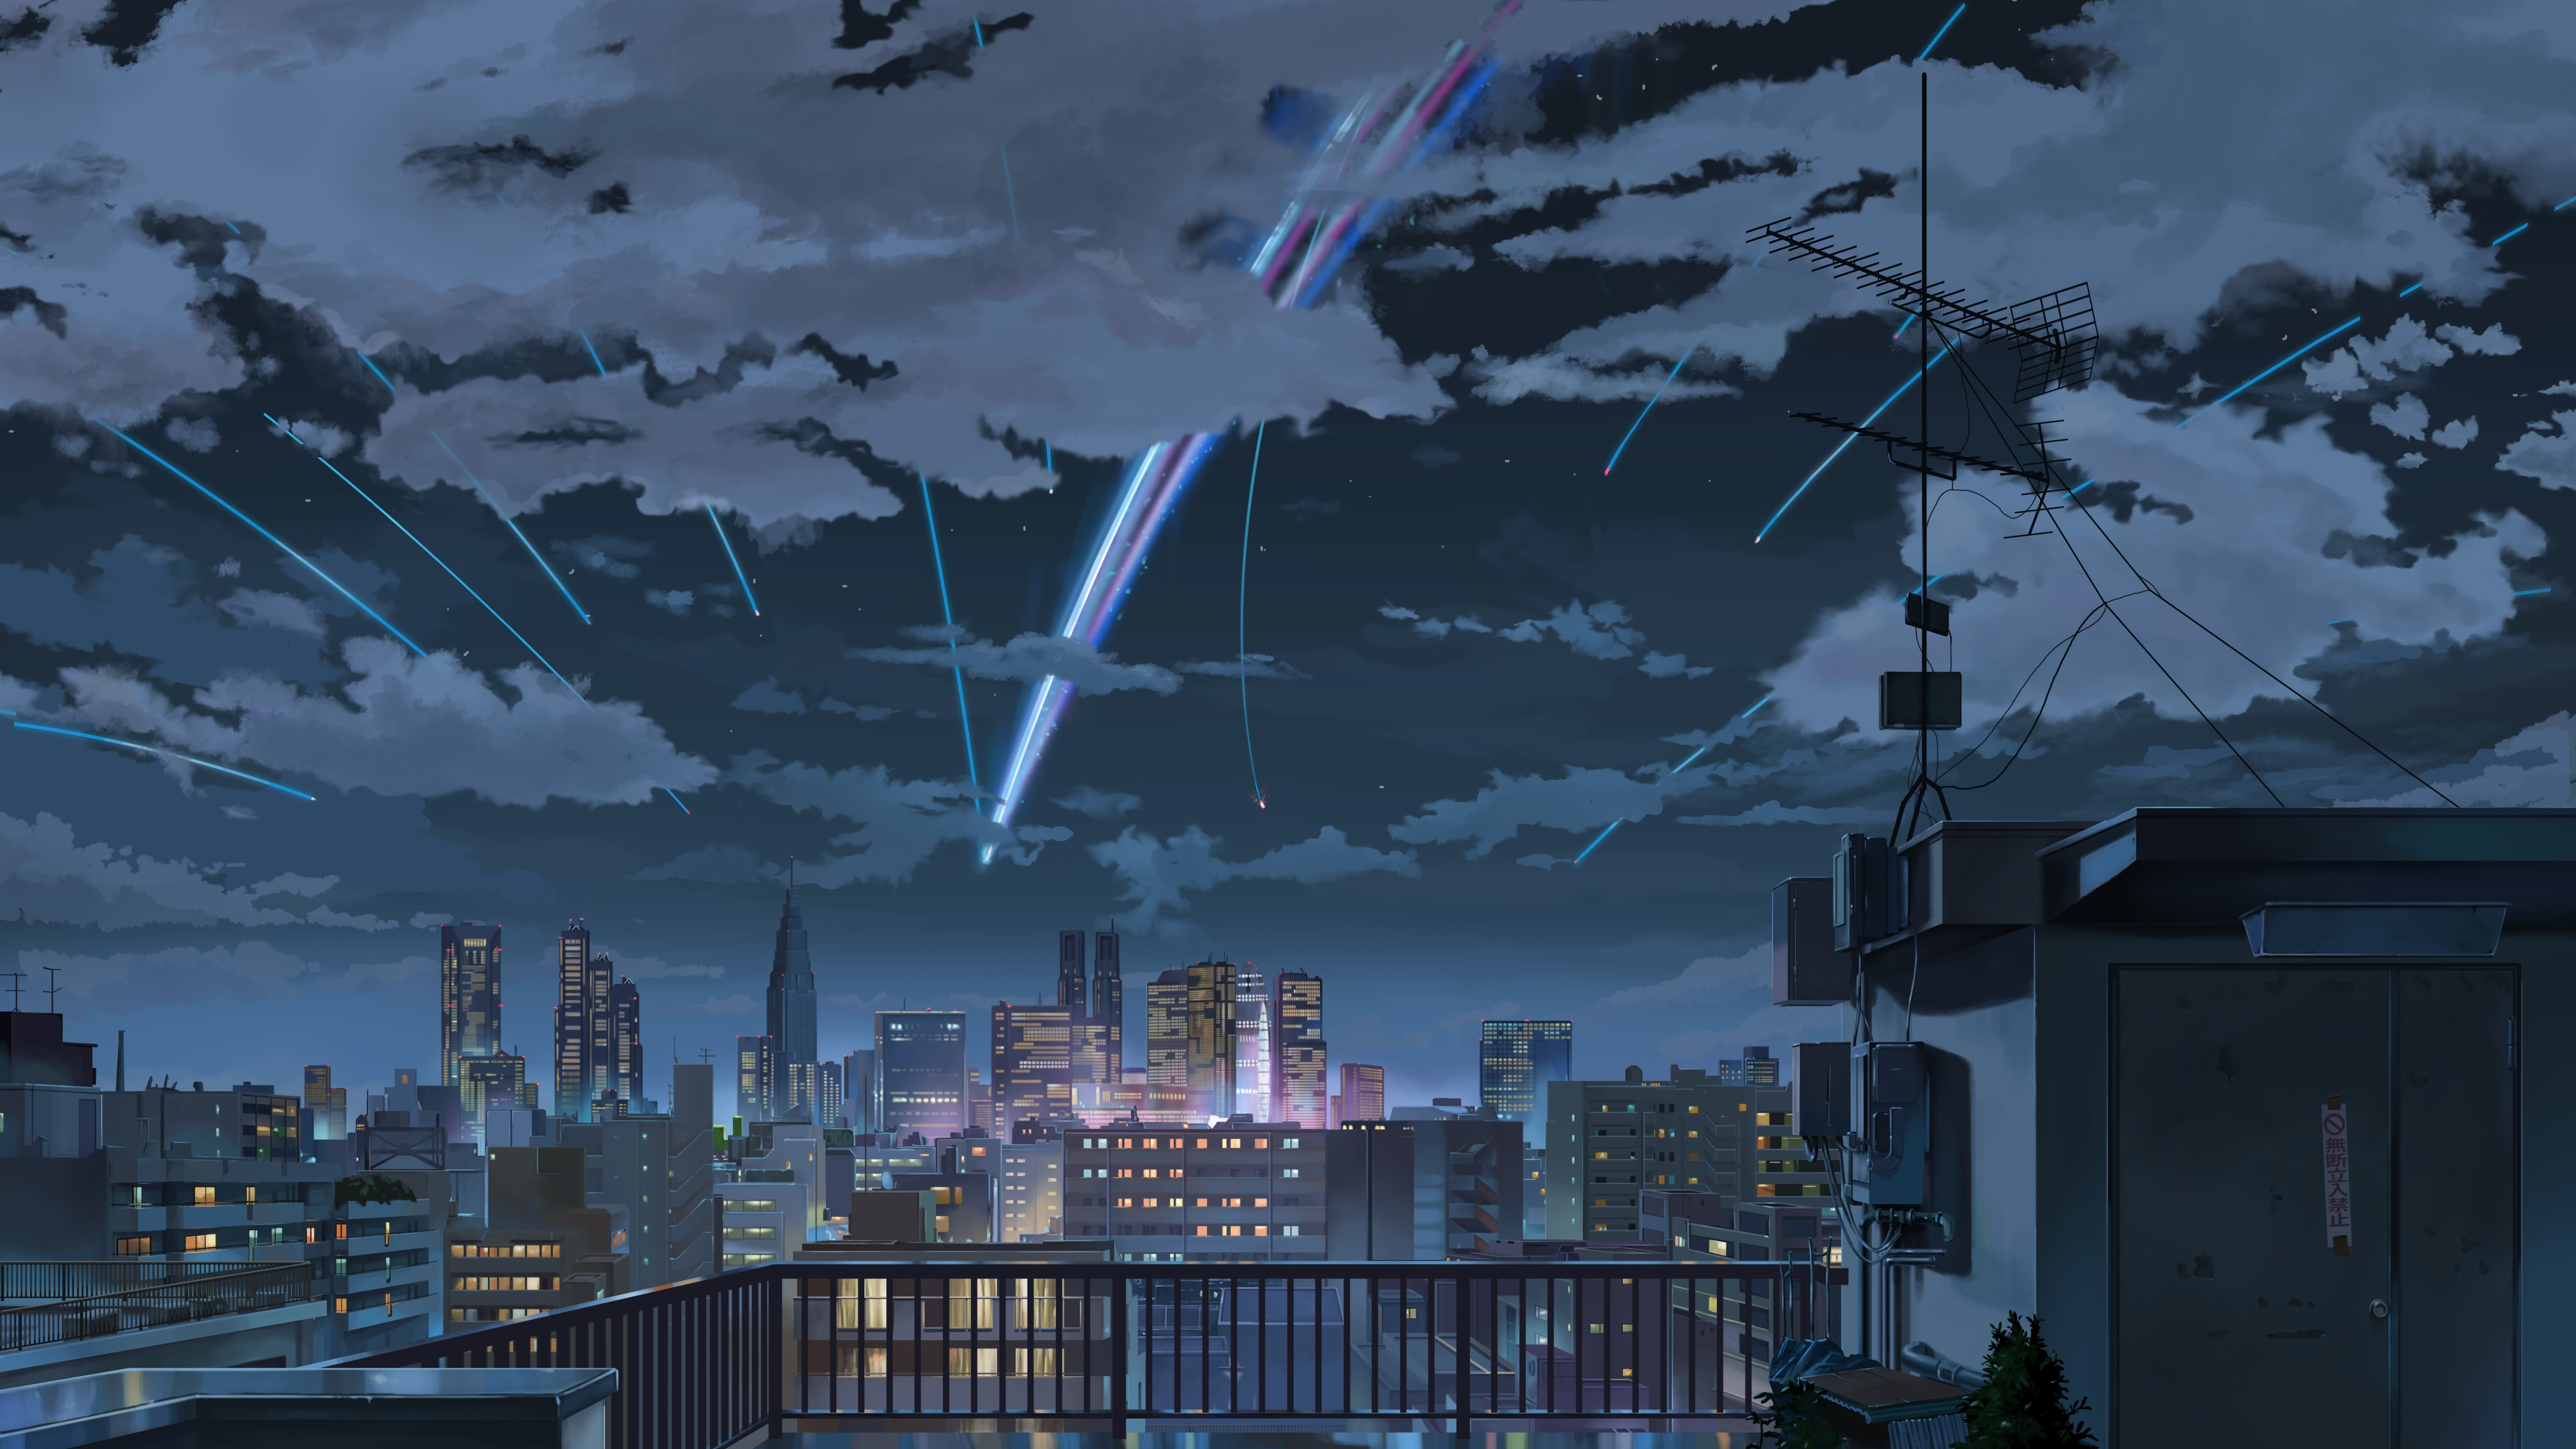 Wallpapers From Anime Your Name 5120x2880 Tags Backgrounds Cool Sky